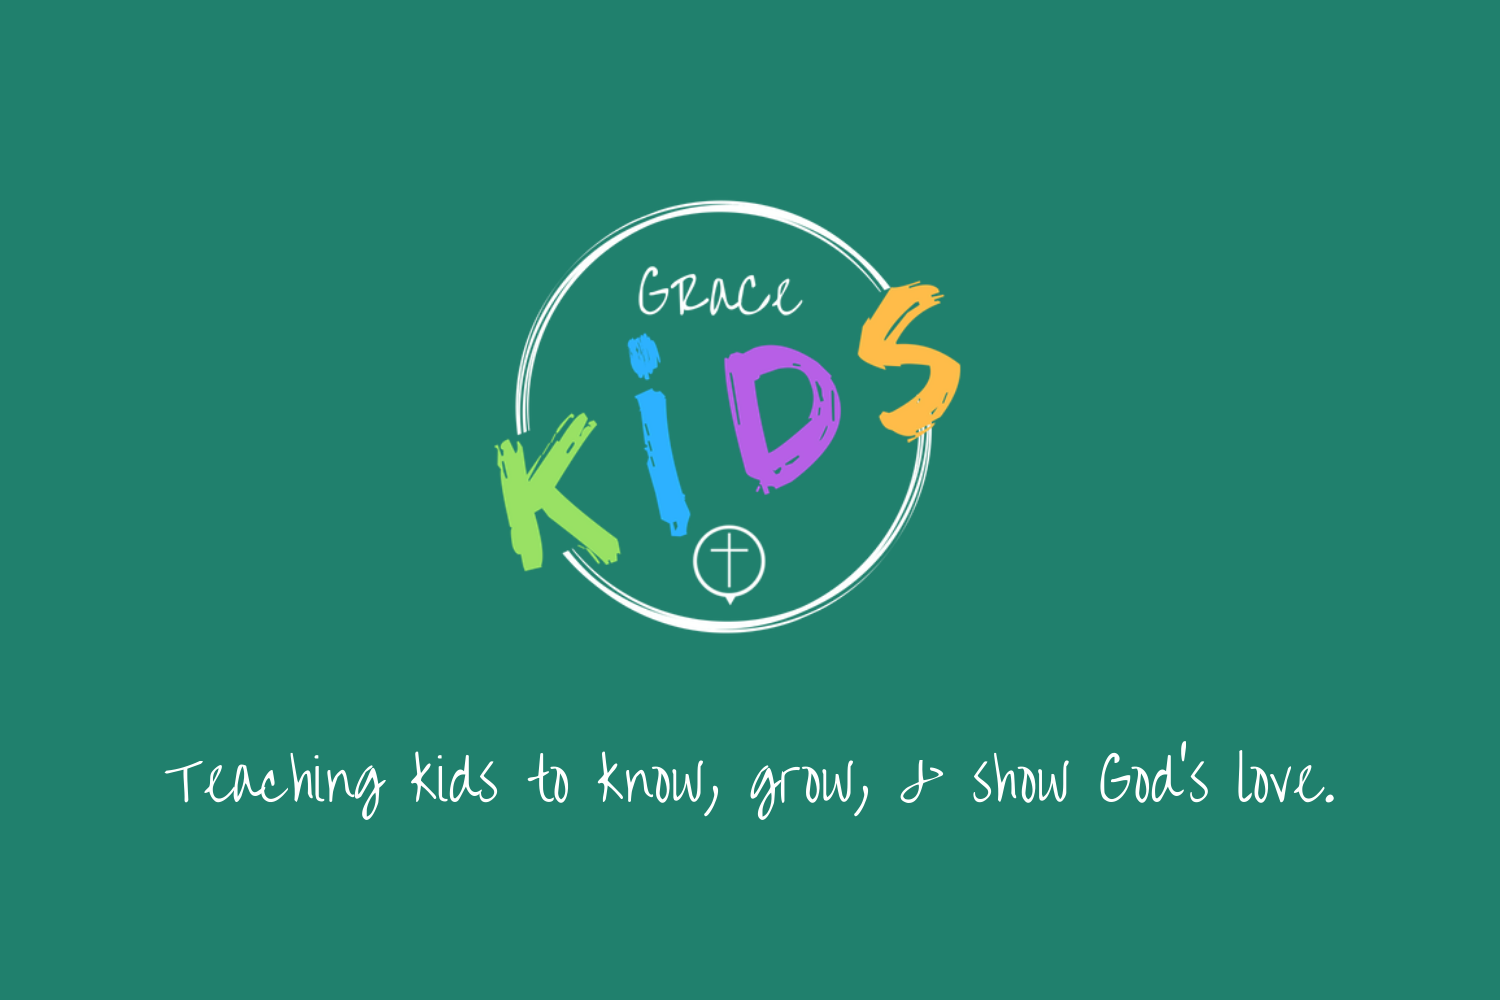 Copy of Teaching kids to know, grow, & show God's love. (1).png